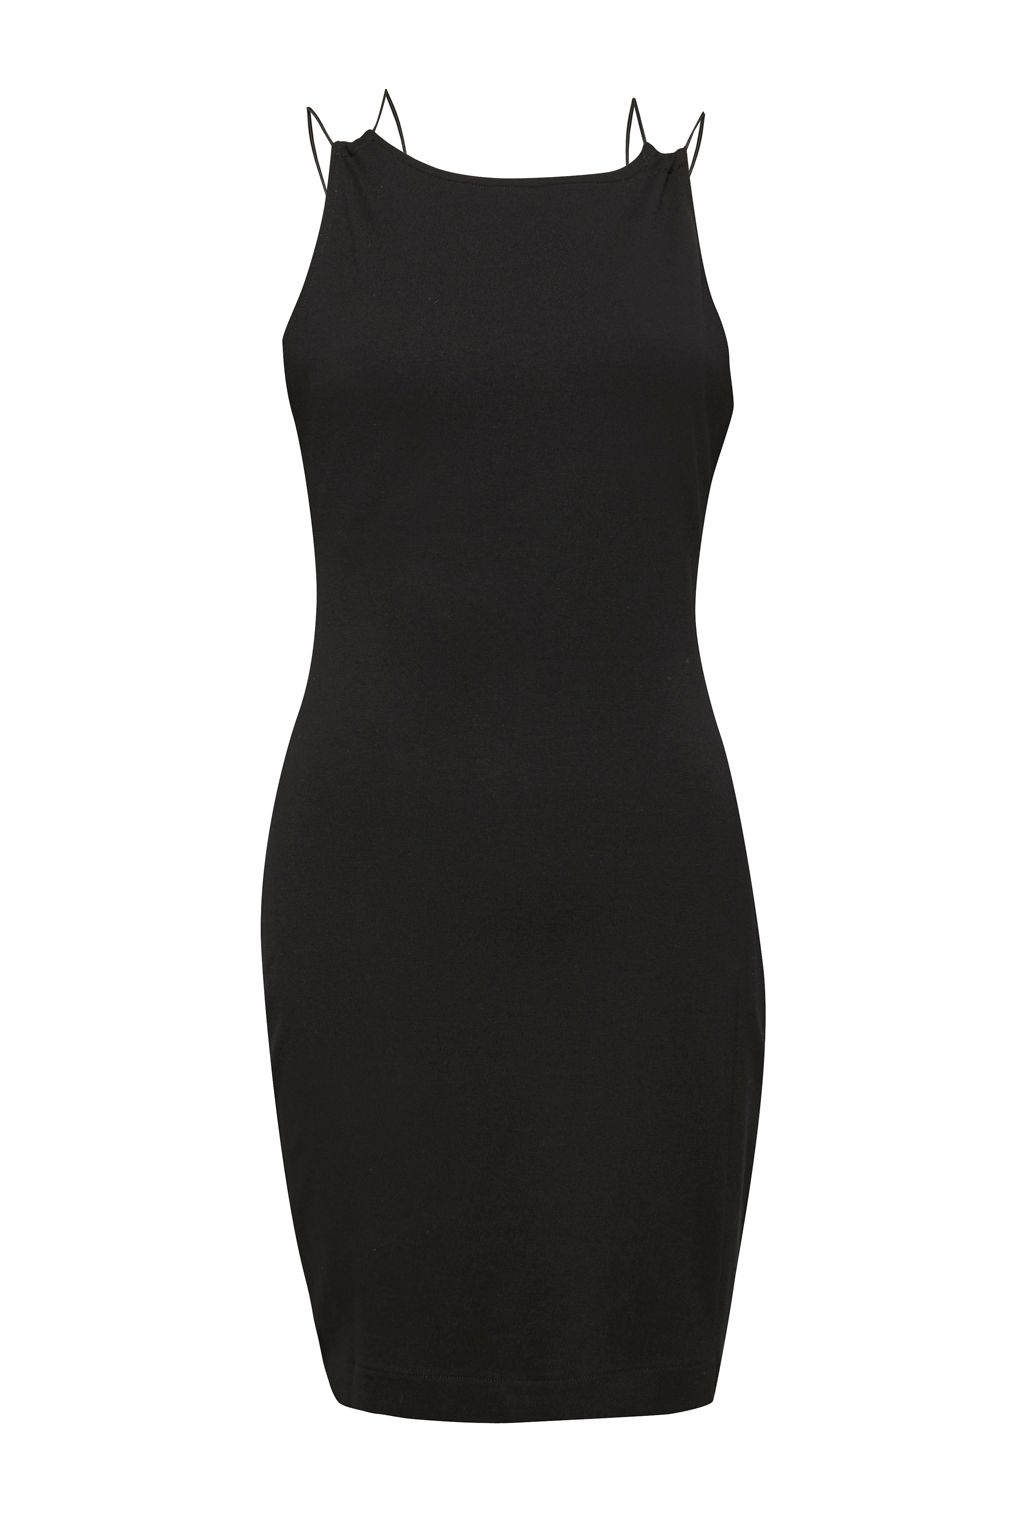 French Connection Kali Jersey Strappy Back Dress, Black